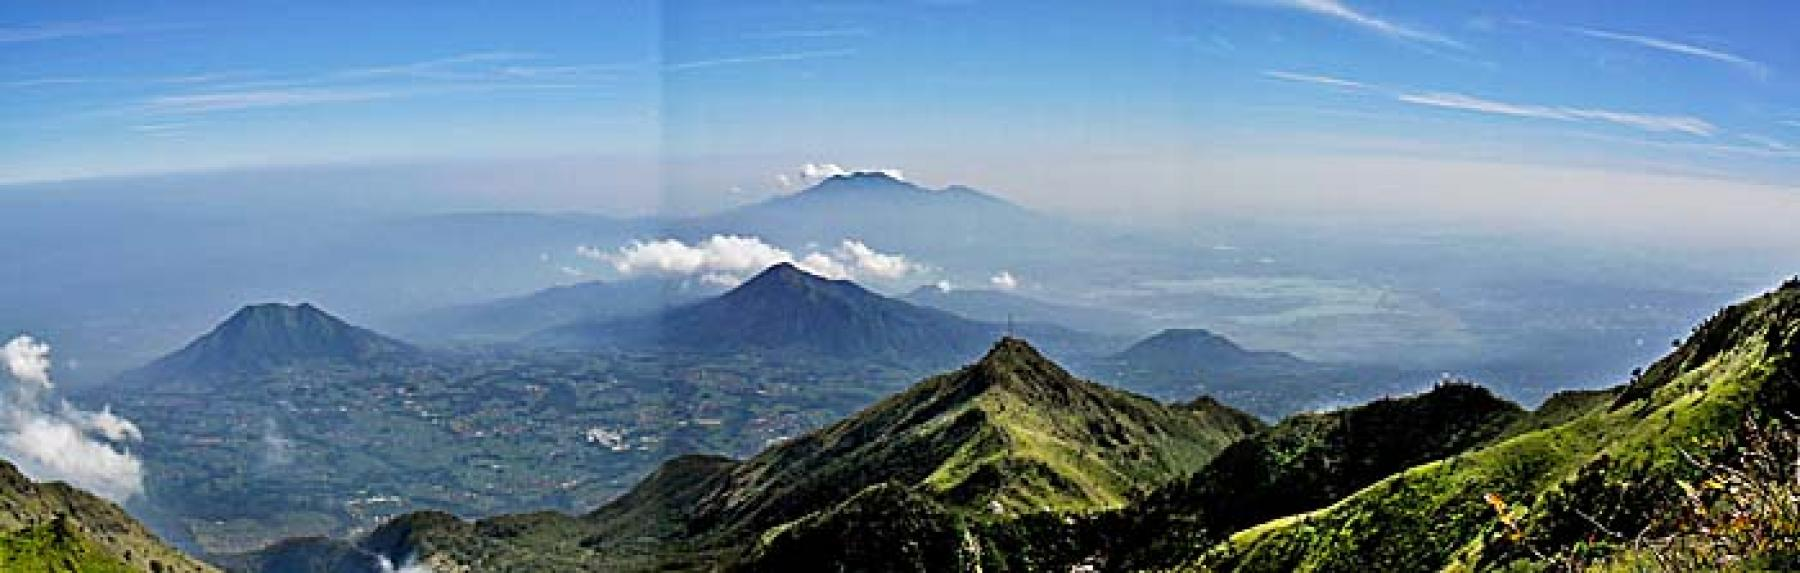 Yogyakarta 2D1N Mount Merbabu Hike + 1 optional day tour of Borobudur etc. starting at Yogyakarta City, Special Region of Yogyakarta, Indonesia